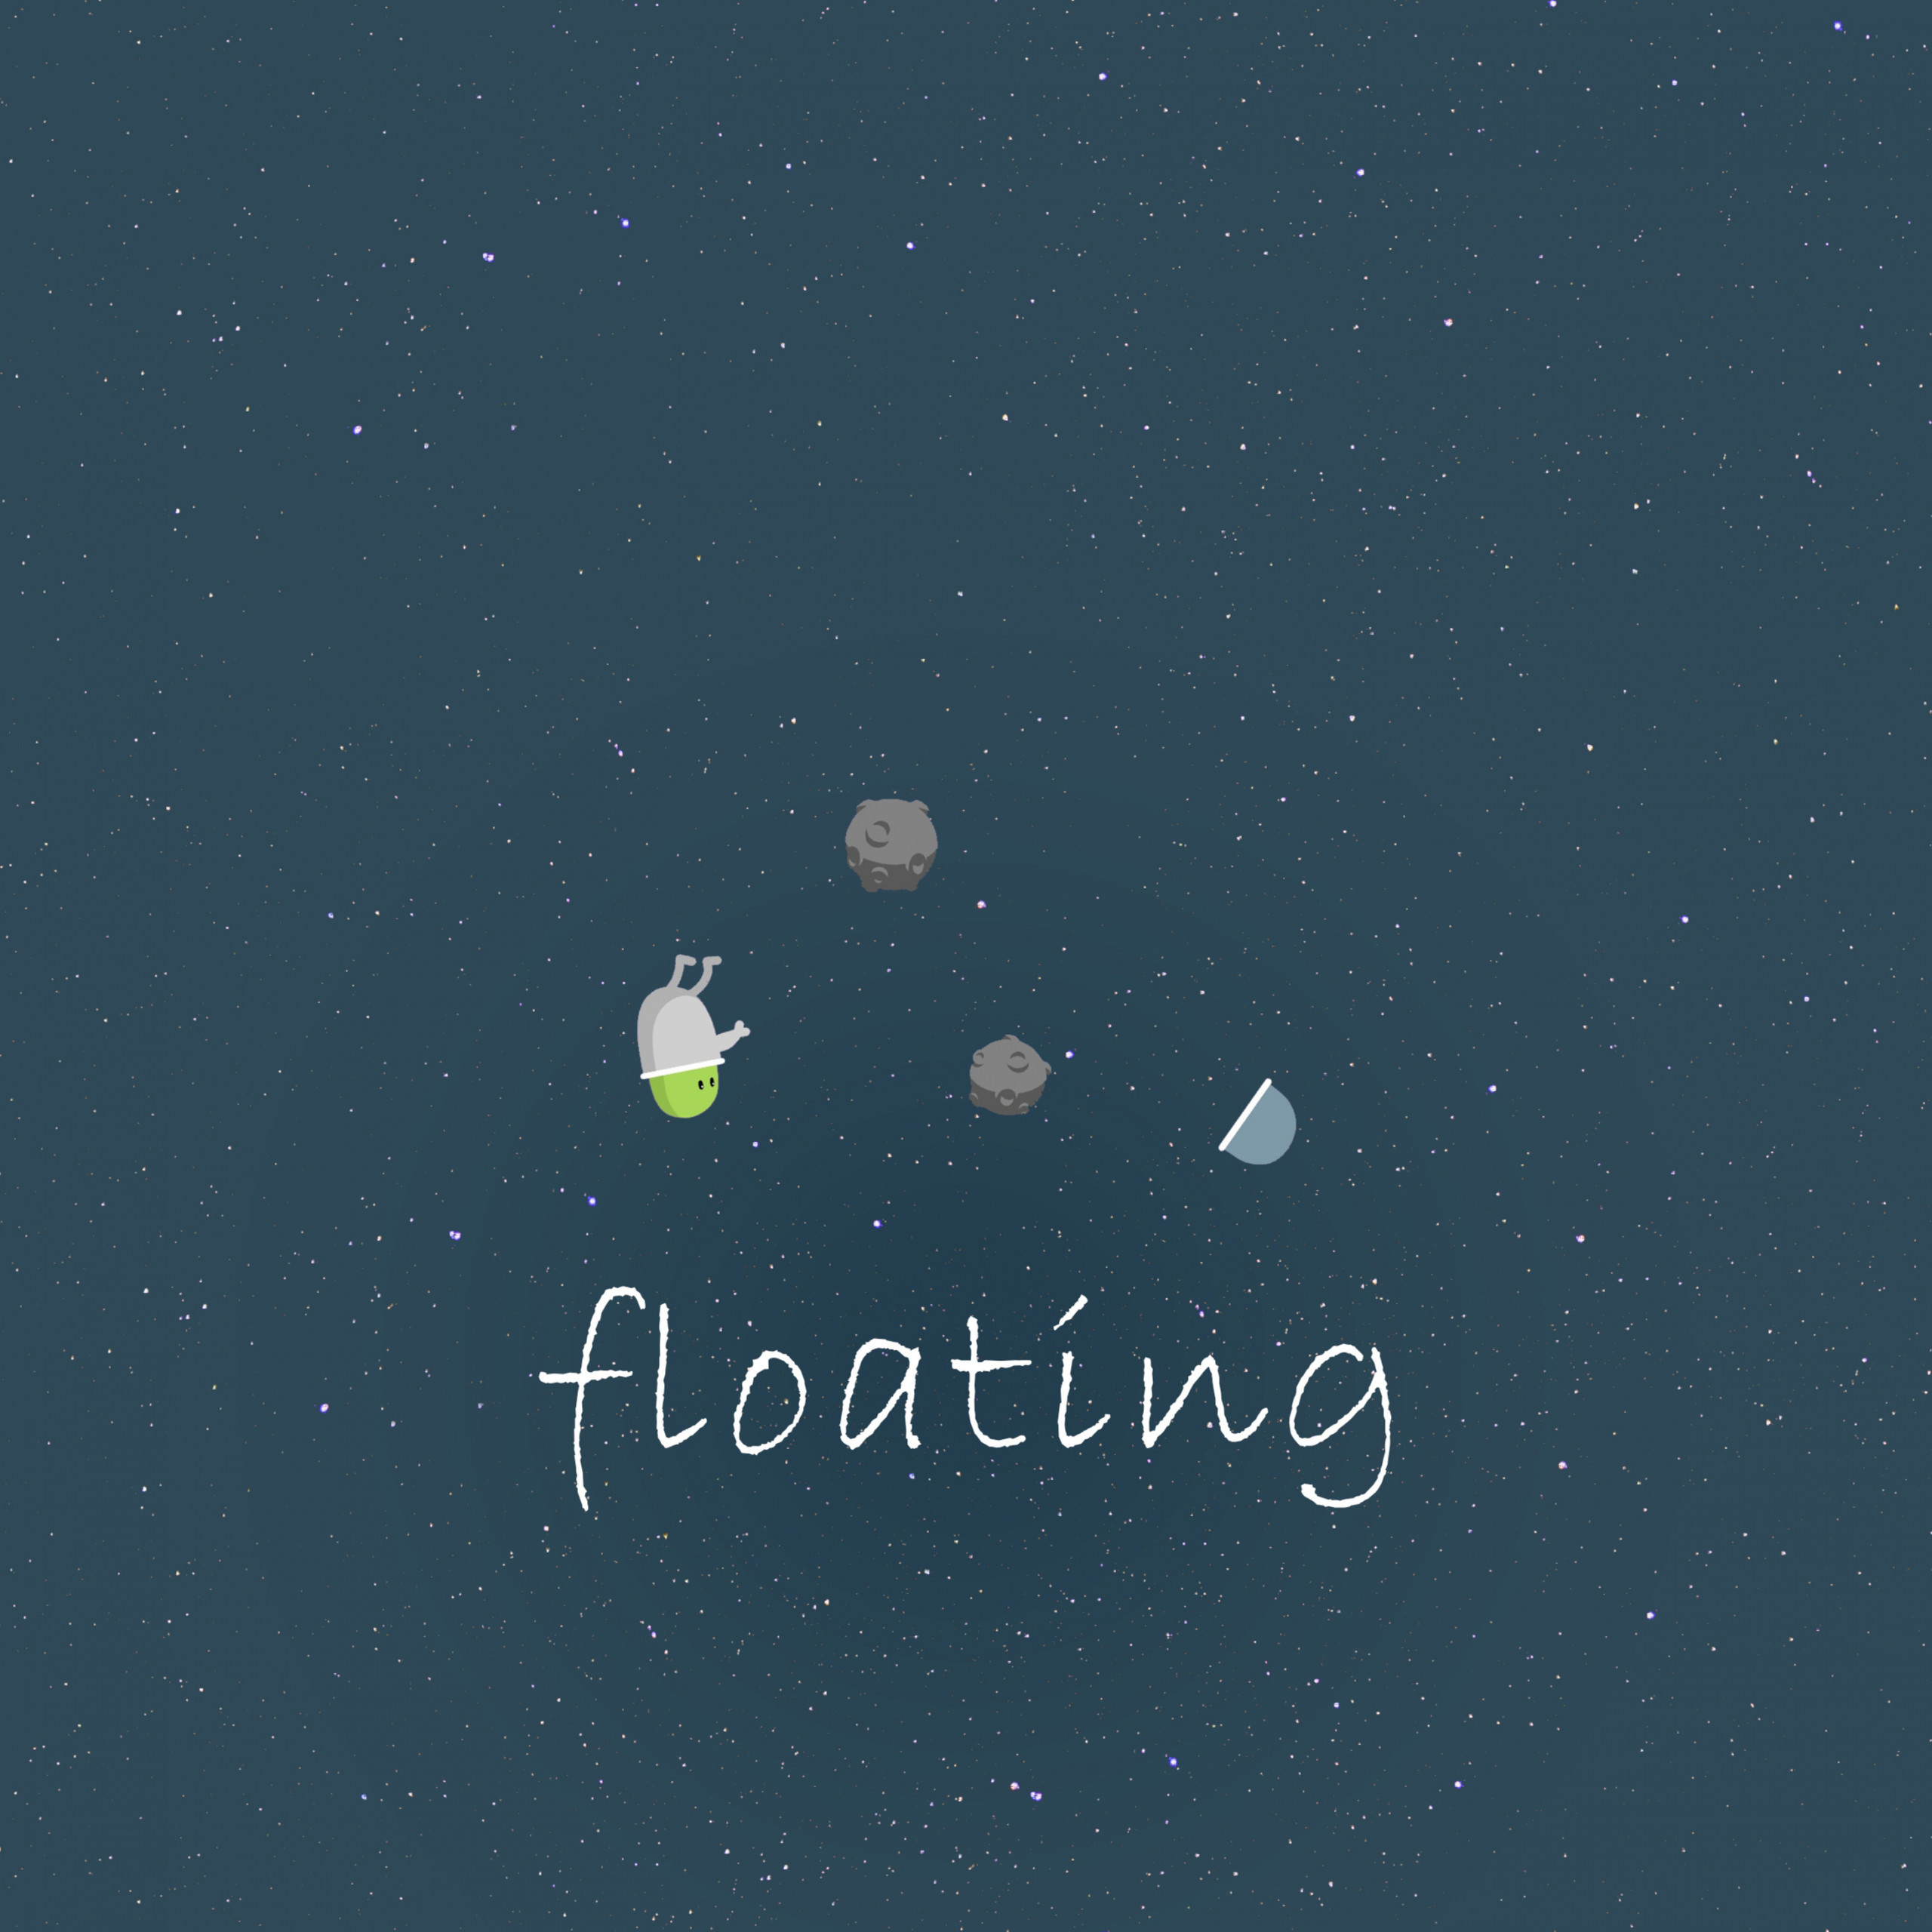 space funny minimalism pic 2932x2932